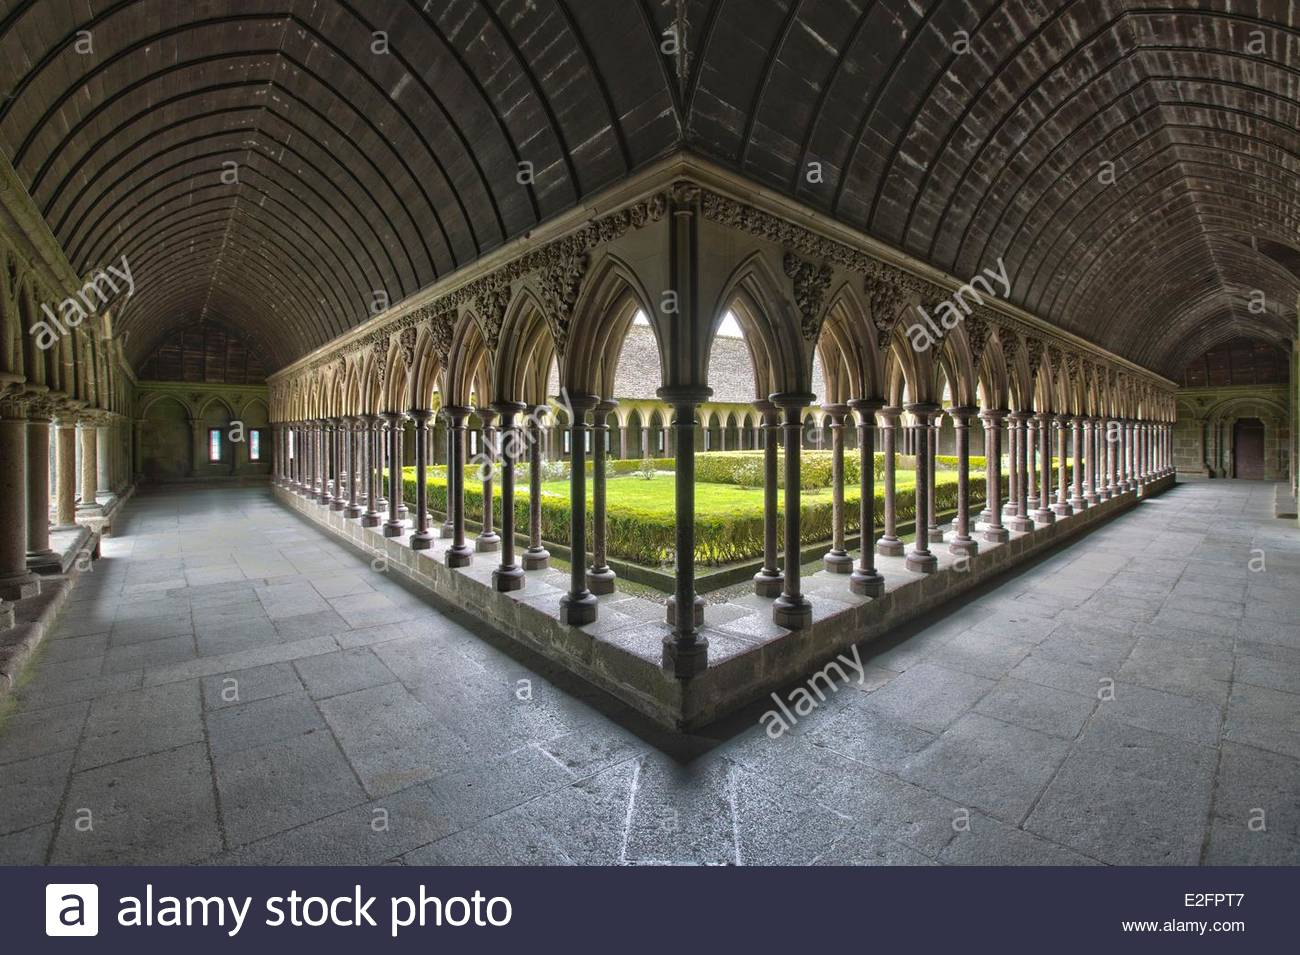 France Manche Bay of Mont Saint Michel listed as World Heritage by UNESCO The Mont Saint Michel Abbey Cloister - Stock Image